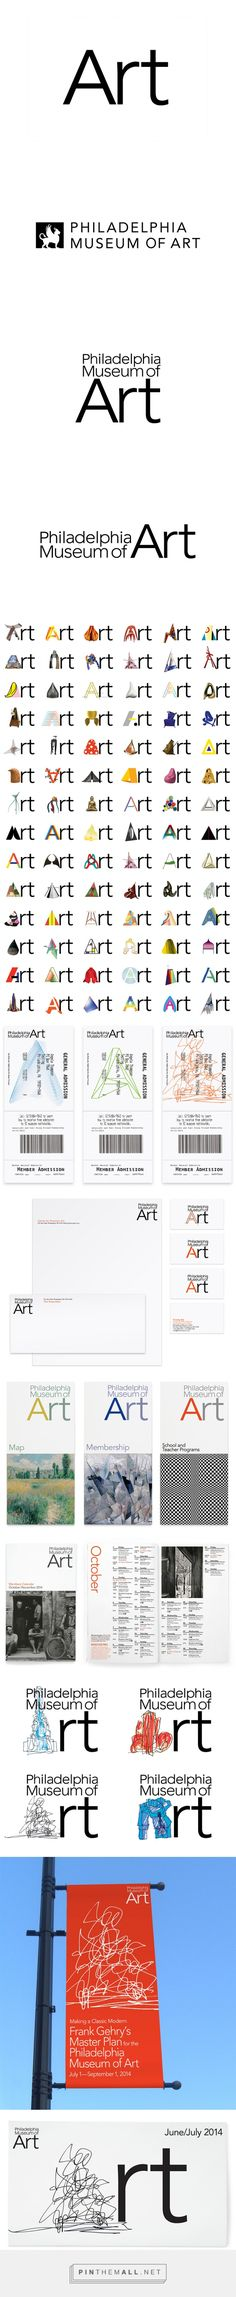 philadelphia museum of art rebrand by paula scher - created via http://pinthemall.net